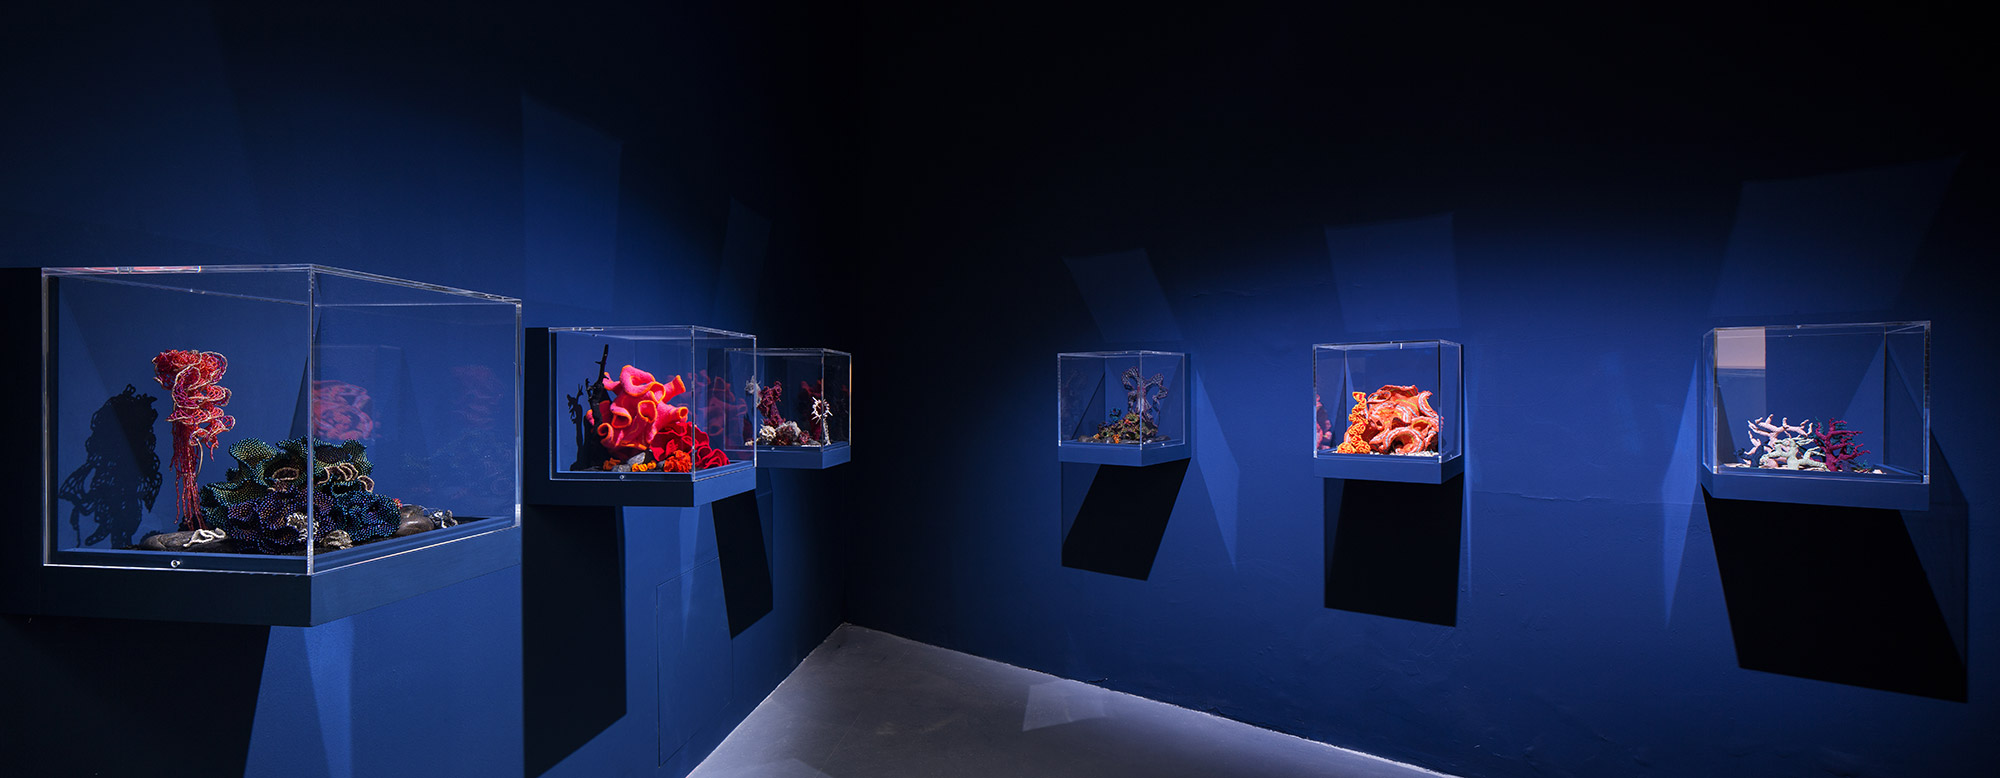 Reef scultures in gallery with blue walls